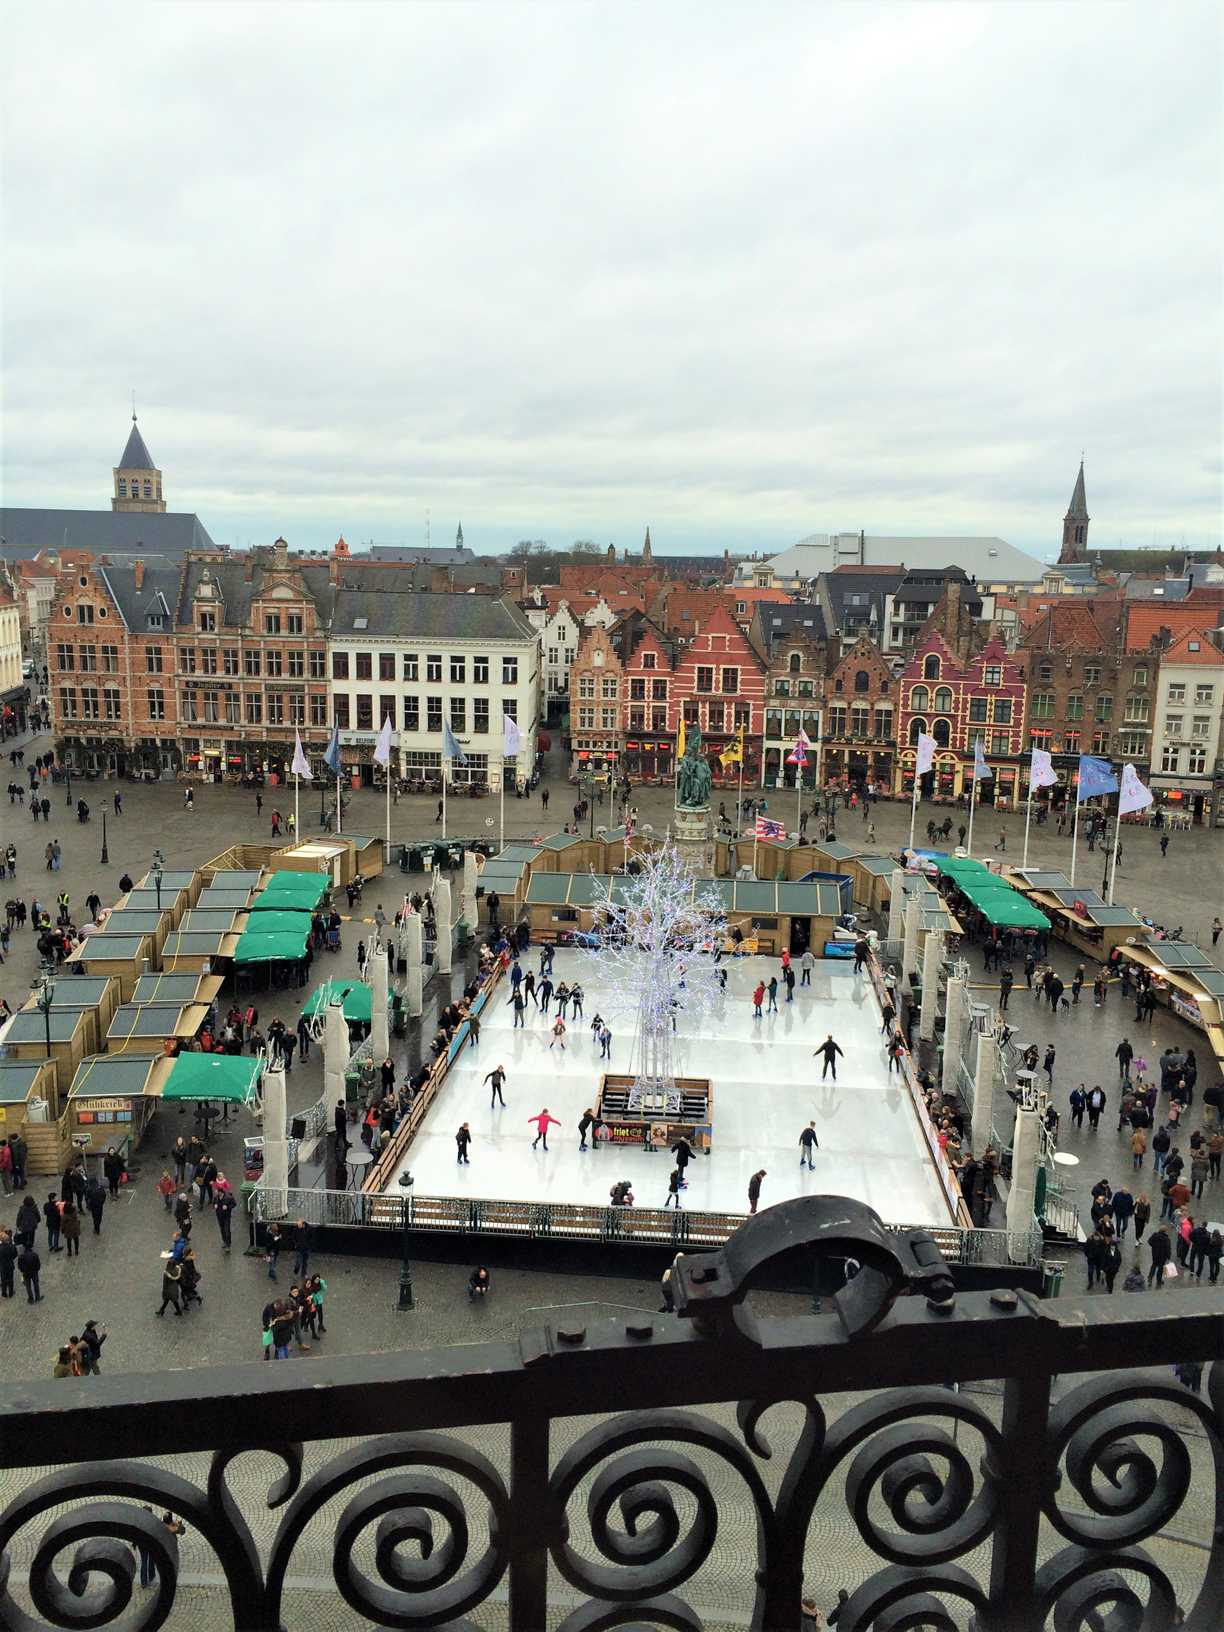 A picture of and ice rink and buildings in Markt in Bruges, Belgium, as seen from the belfry.